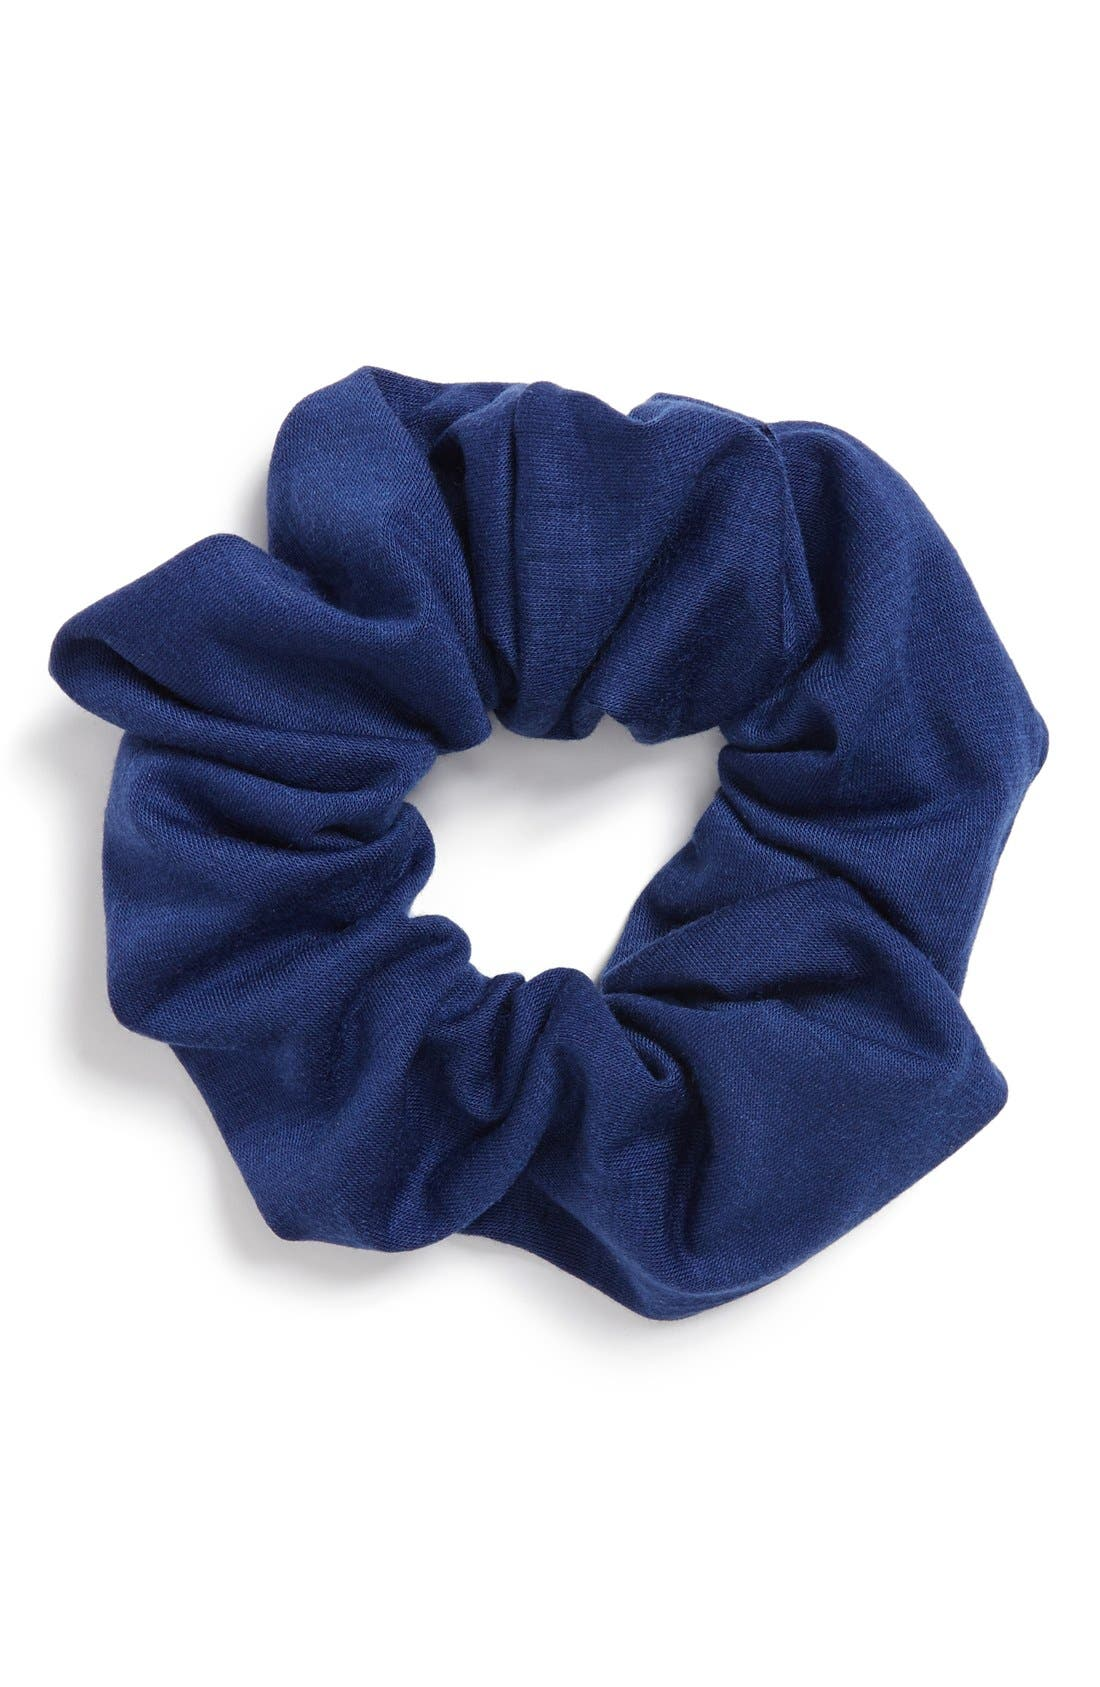 Alternate Image 1 Selected - Natasha Couture 'Wrinkle in Time' Scrunchie